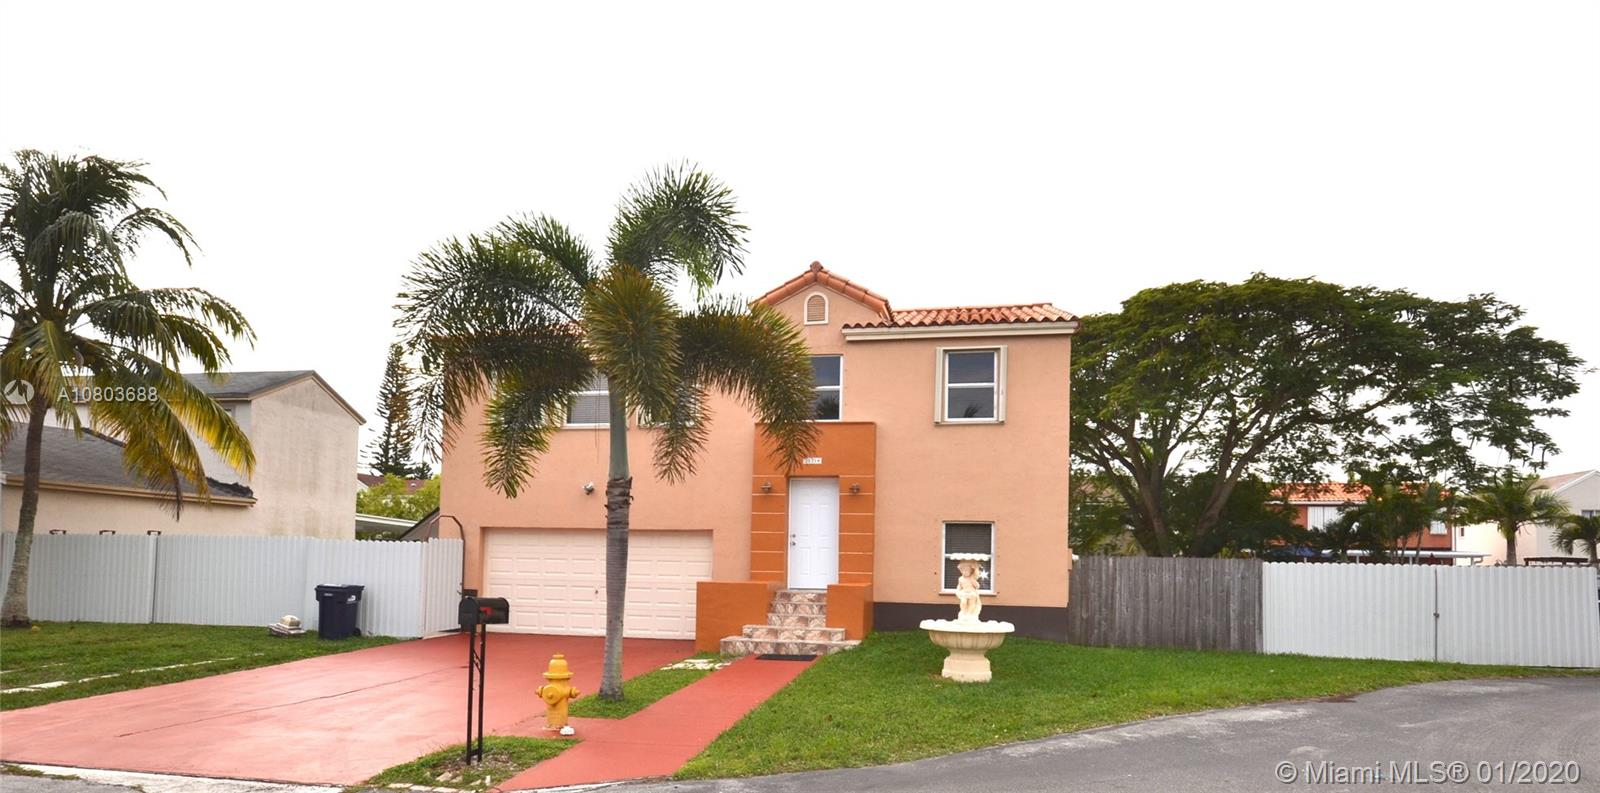 27318 SW 121 Ave, Homestead, FL 33032 - Homestead, FL real estate listing